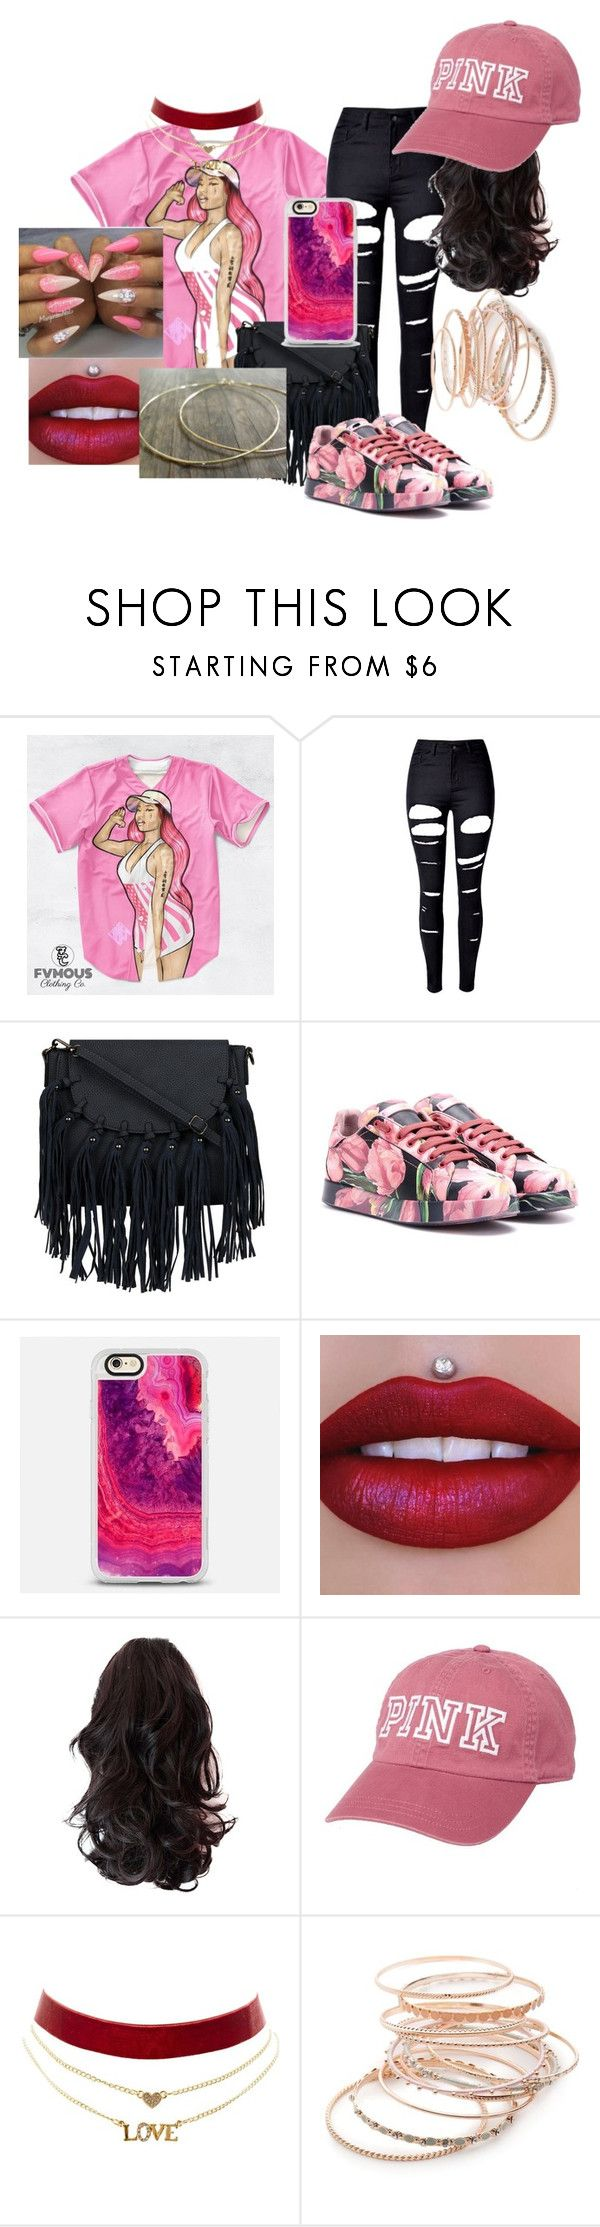 """""""Nicki baby"""" by lilshawtyt ❤ liked on Polyvore featuring beauty, Nicki Minaj, WithChic, Dolce&Gabbana, Casetify, Victoria's Secret, Charlotte Russe and Red Camel"""